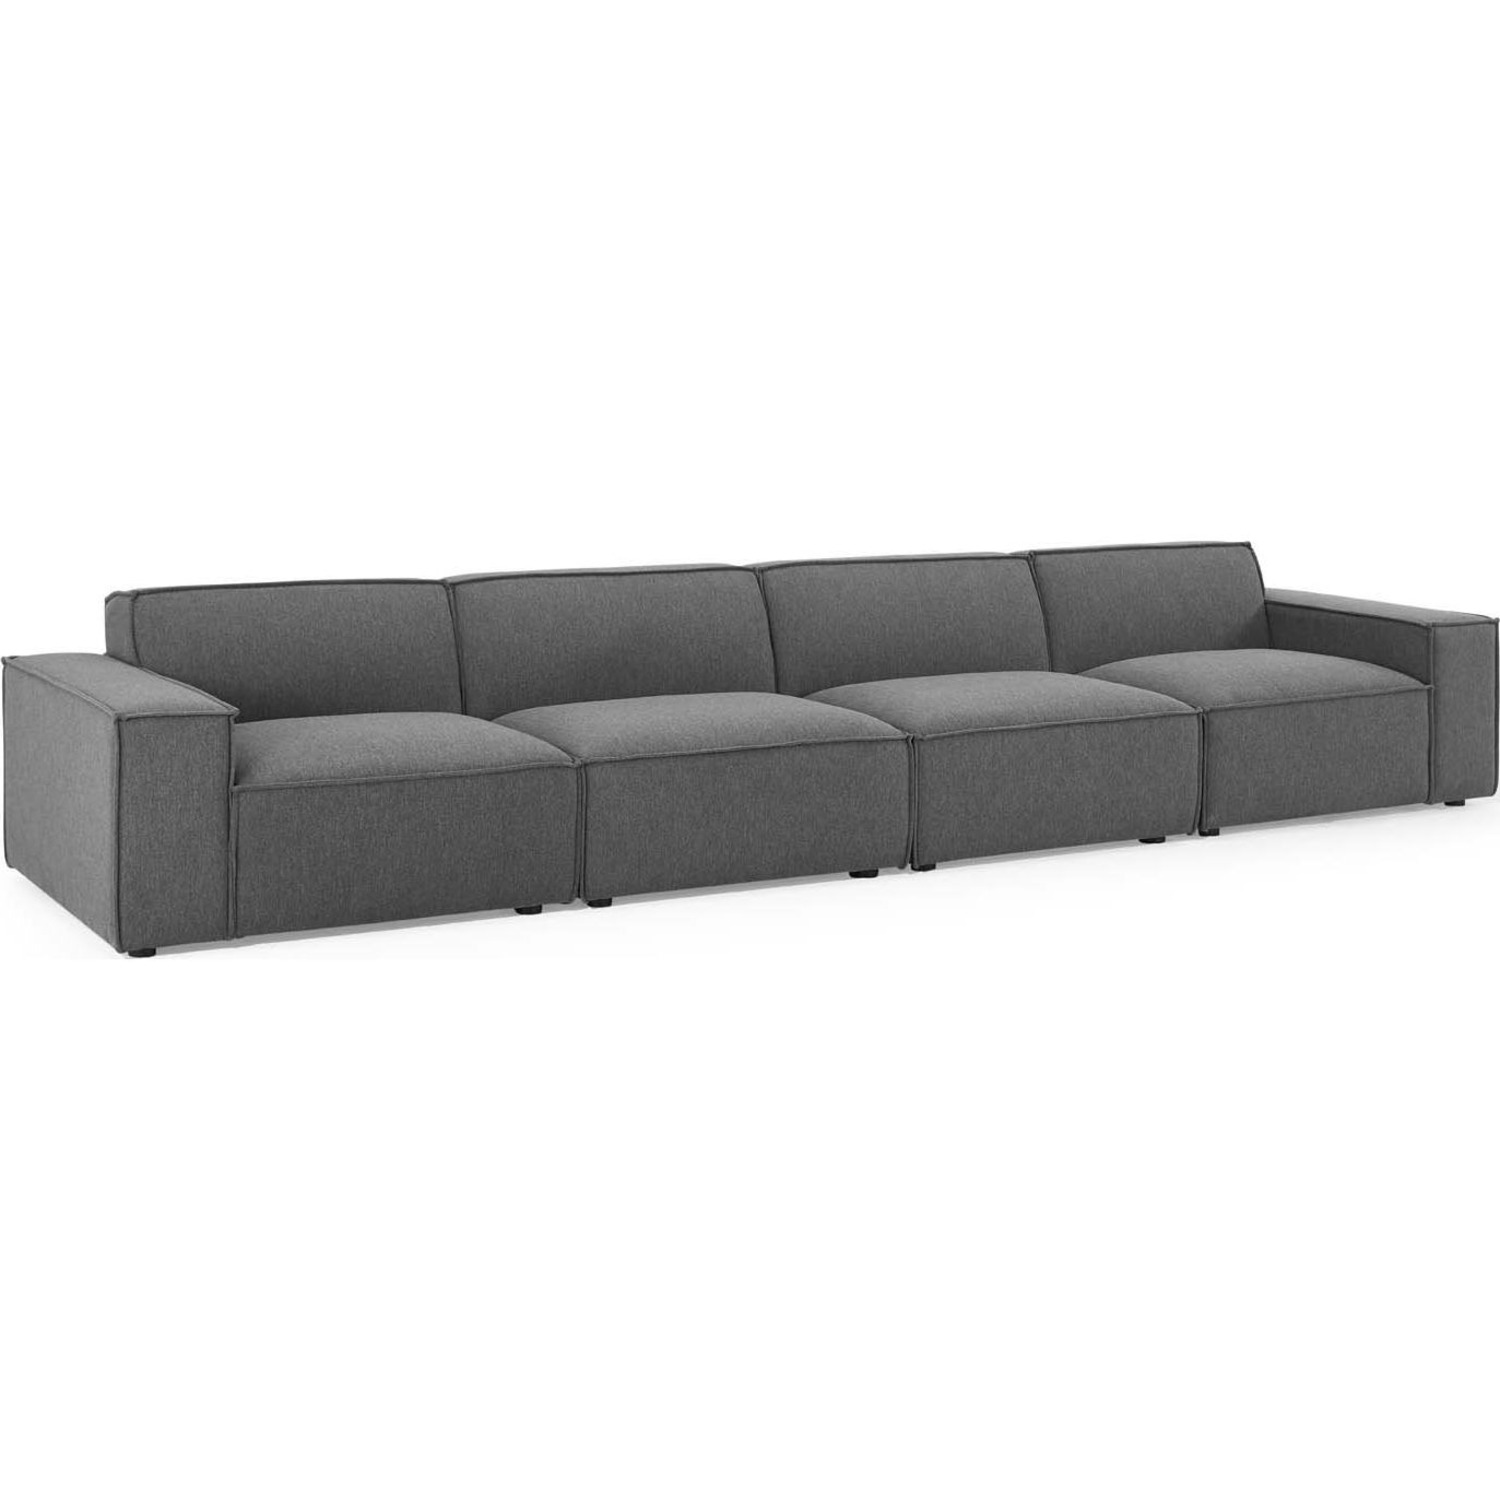 4-Piece Sectional Sofa In Charcoal Foam Padding - image-0